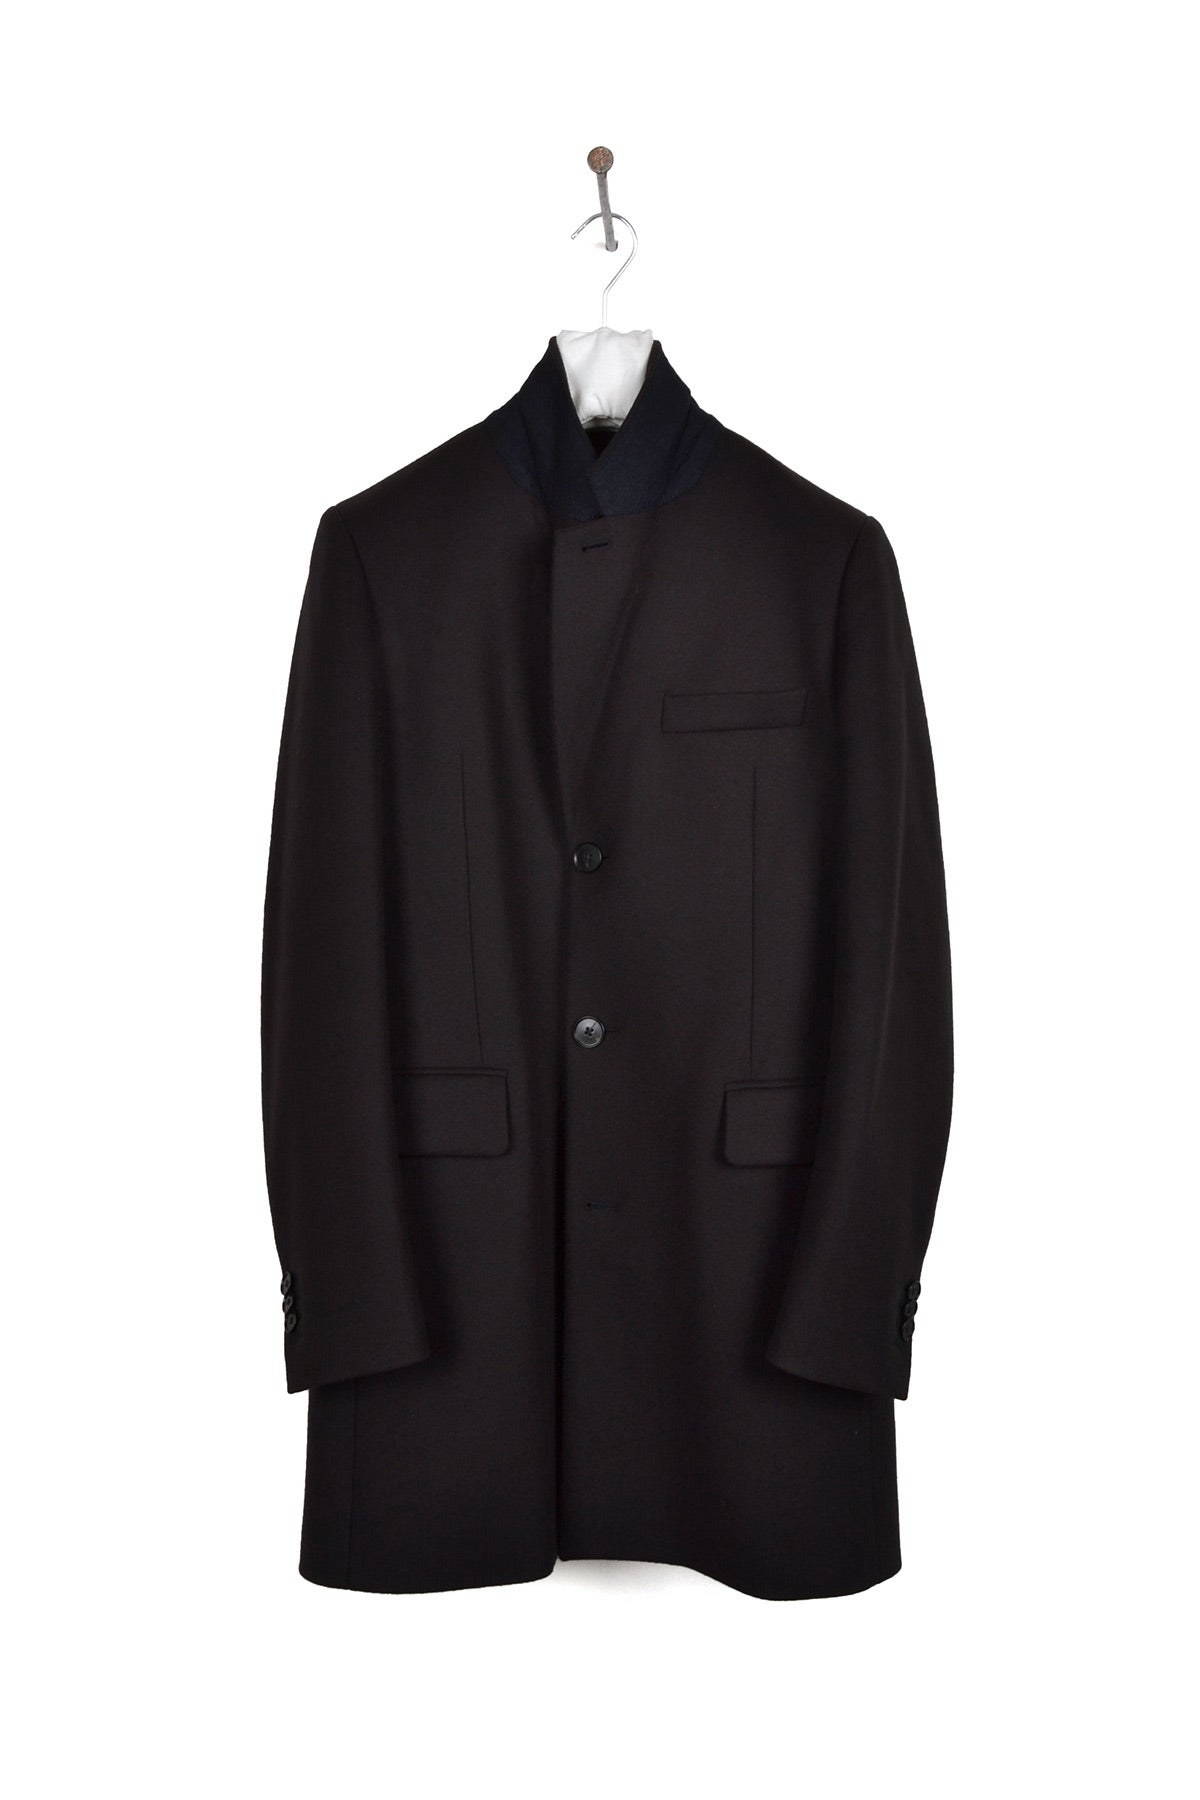 2014 A/W OVERSIZED CHESTER 3-BUTTON COAT IN MARINE WOOL